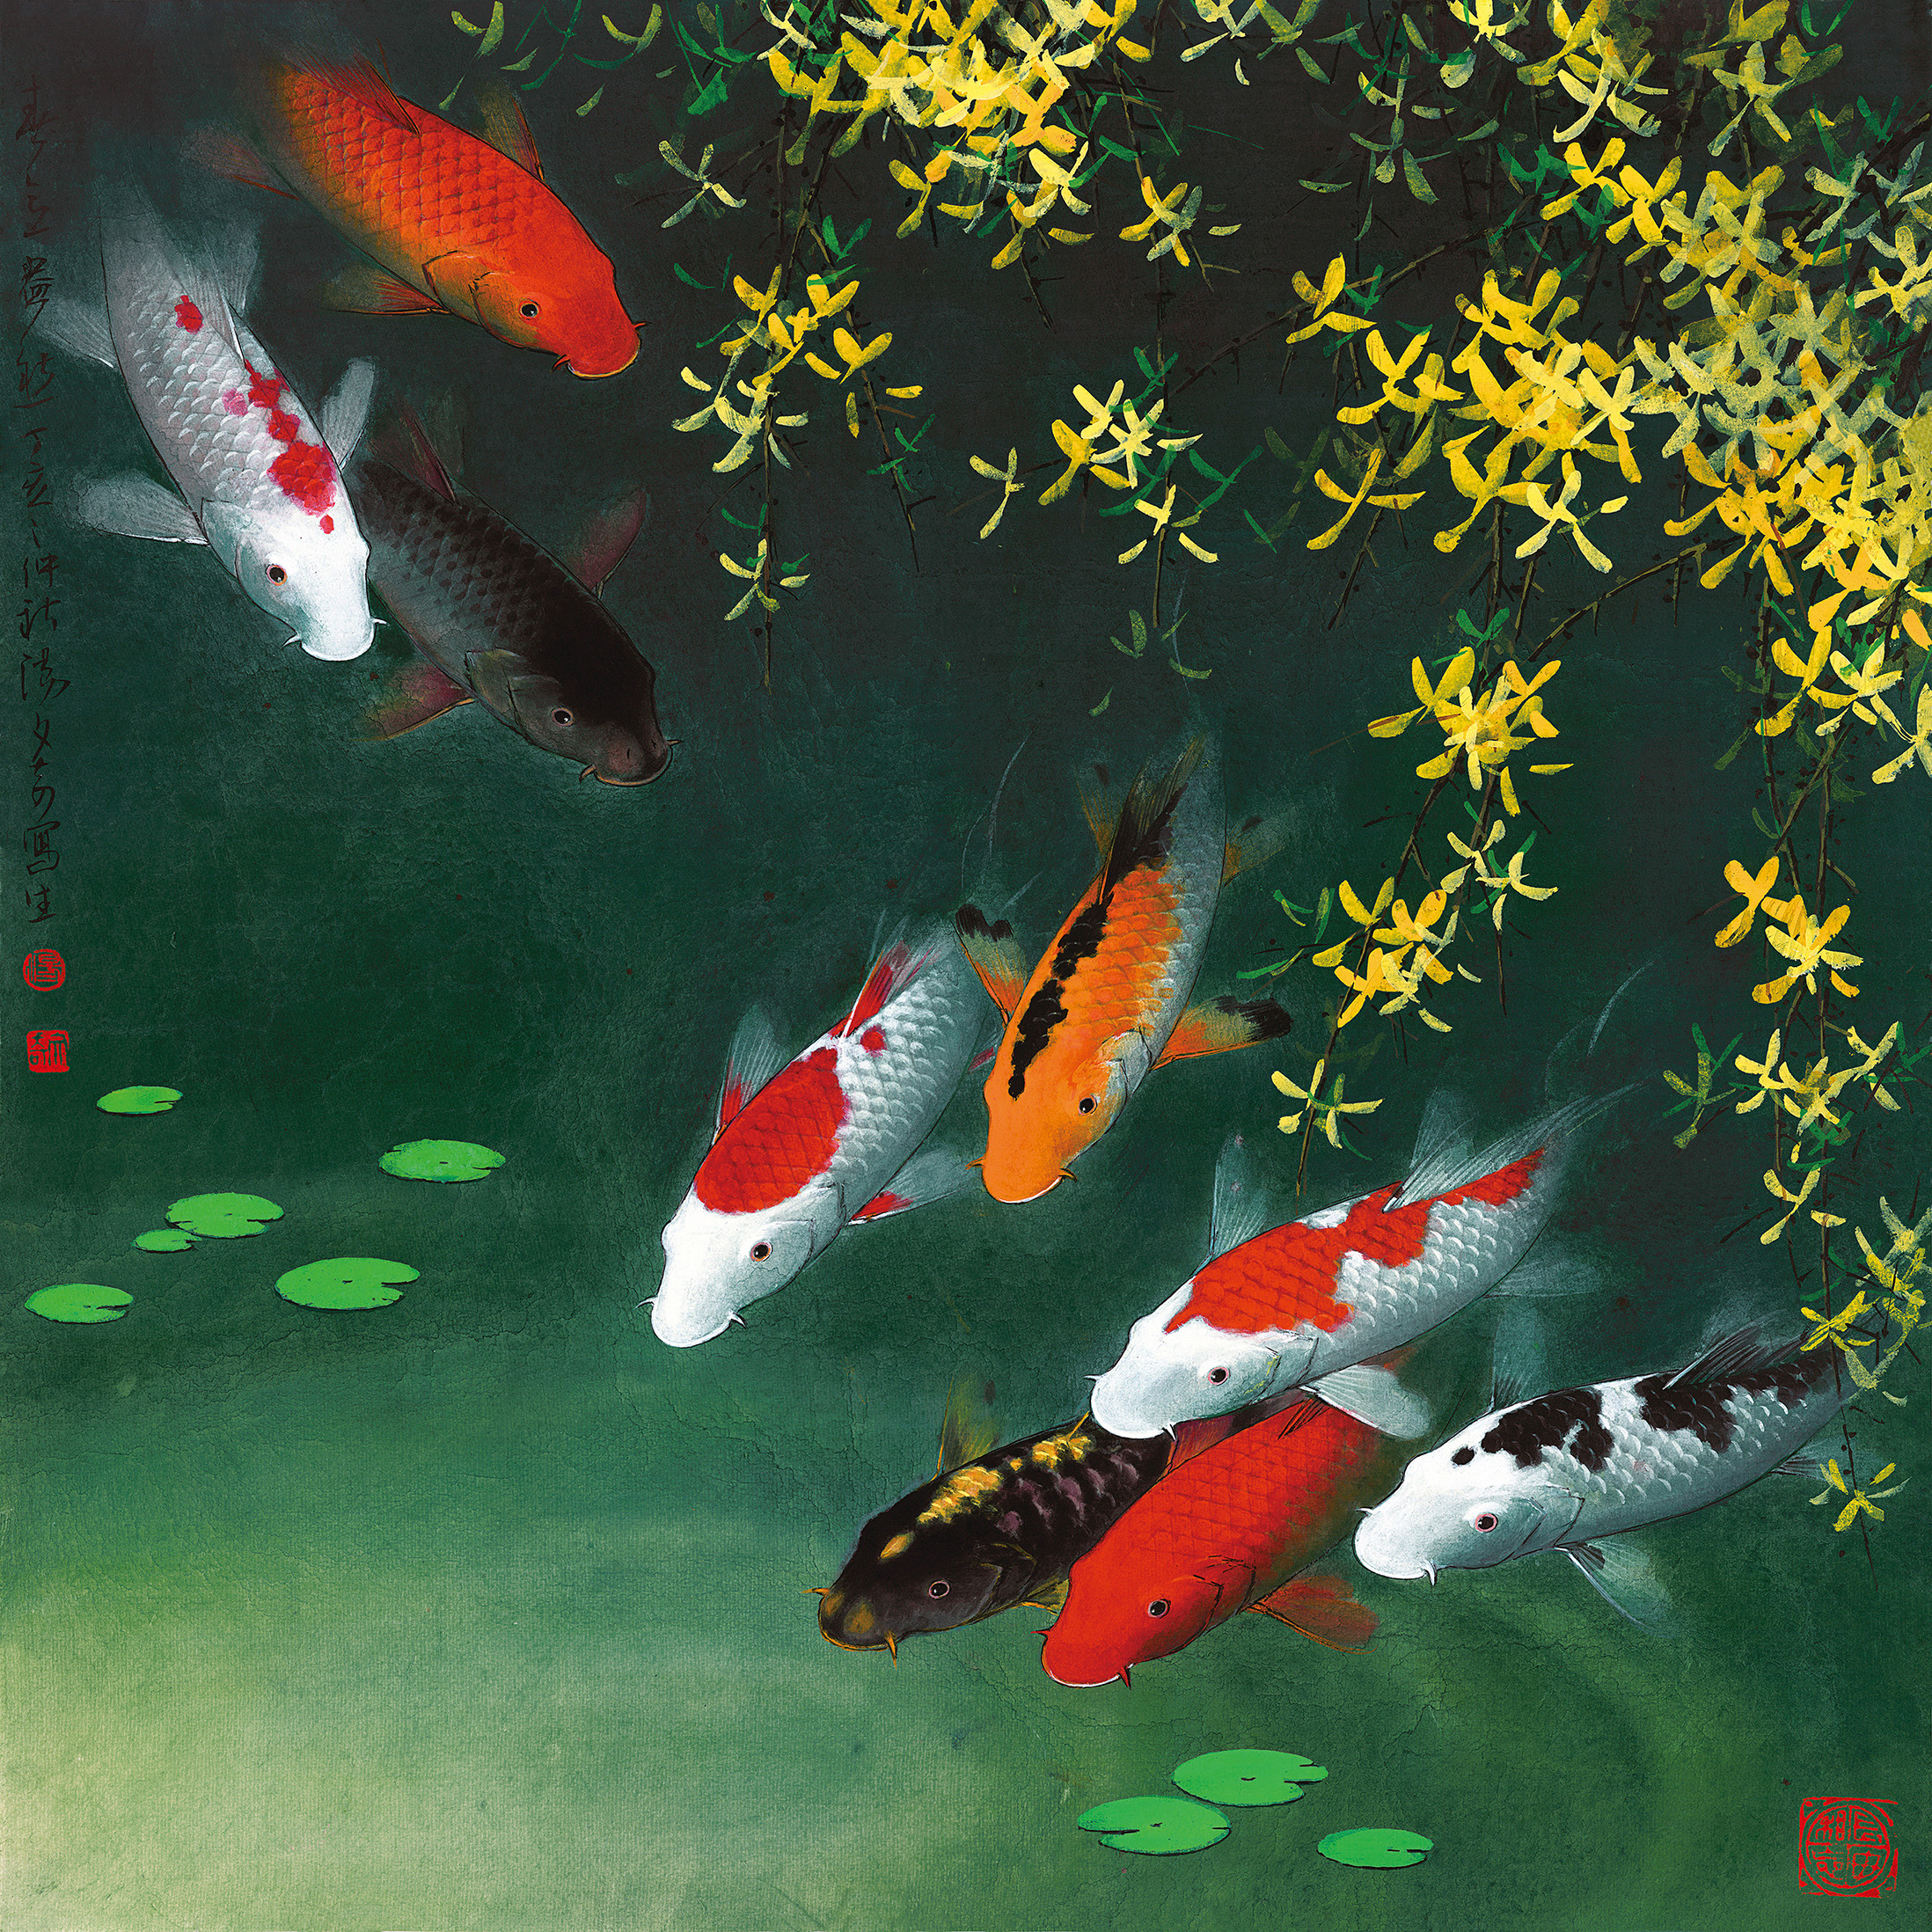 Fine art paintings giclee art prints on canvas koi fish for Koi artwork on canvas